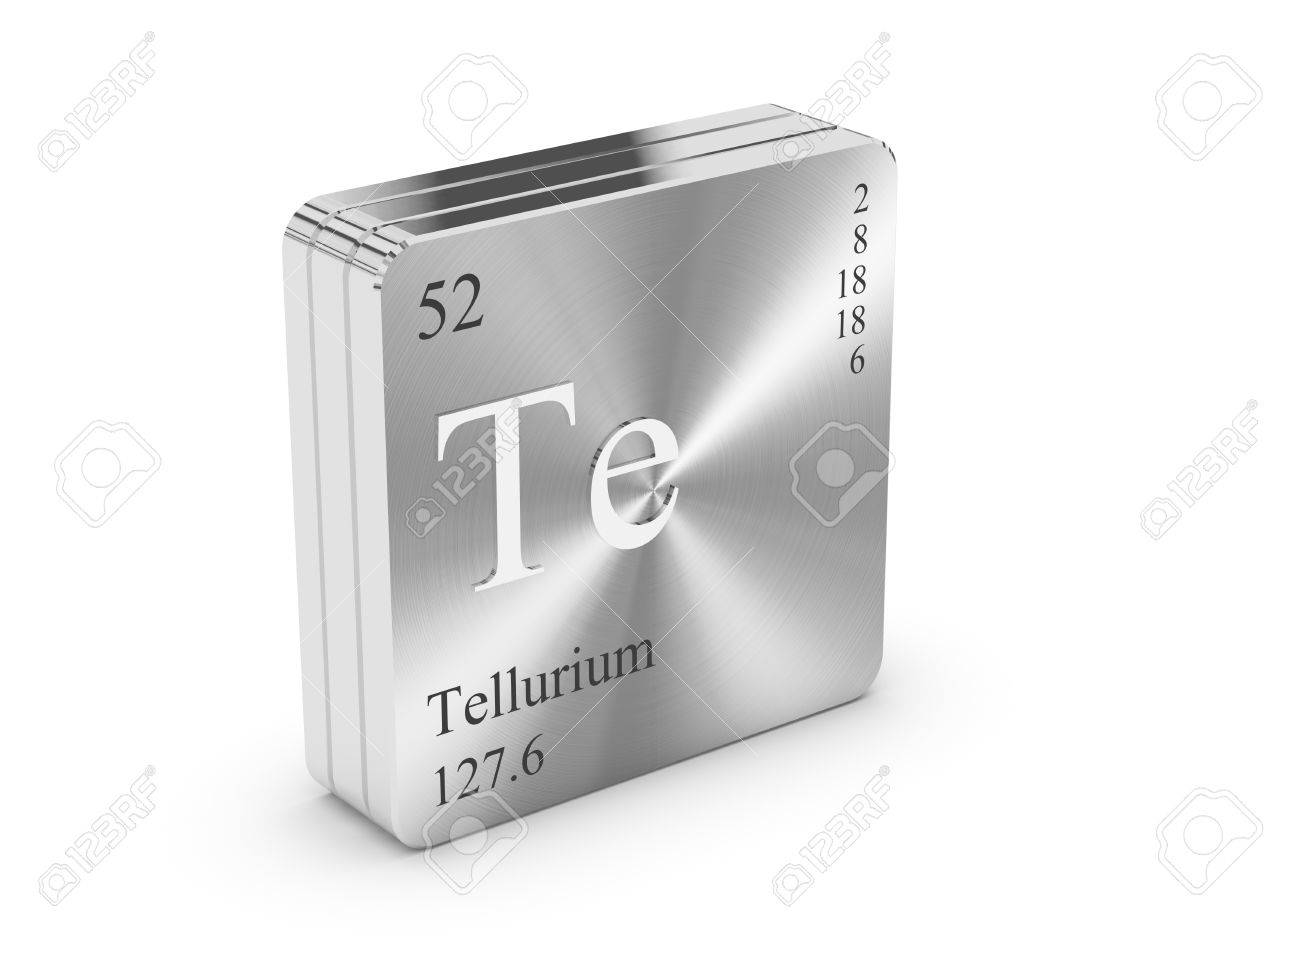 Tellurium on the periodic table images periodic table images tellurium on the periodic table images periodic table images tellurium element of the periodic table on gamestrikefo Choice Image